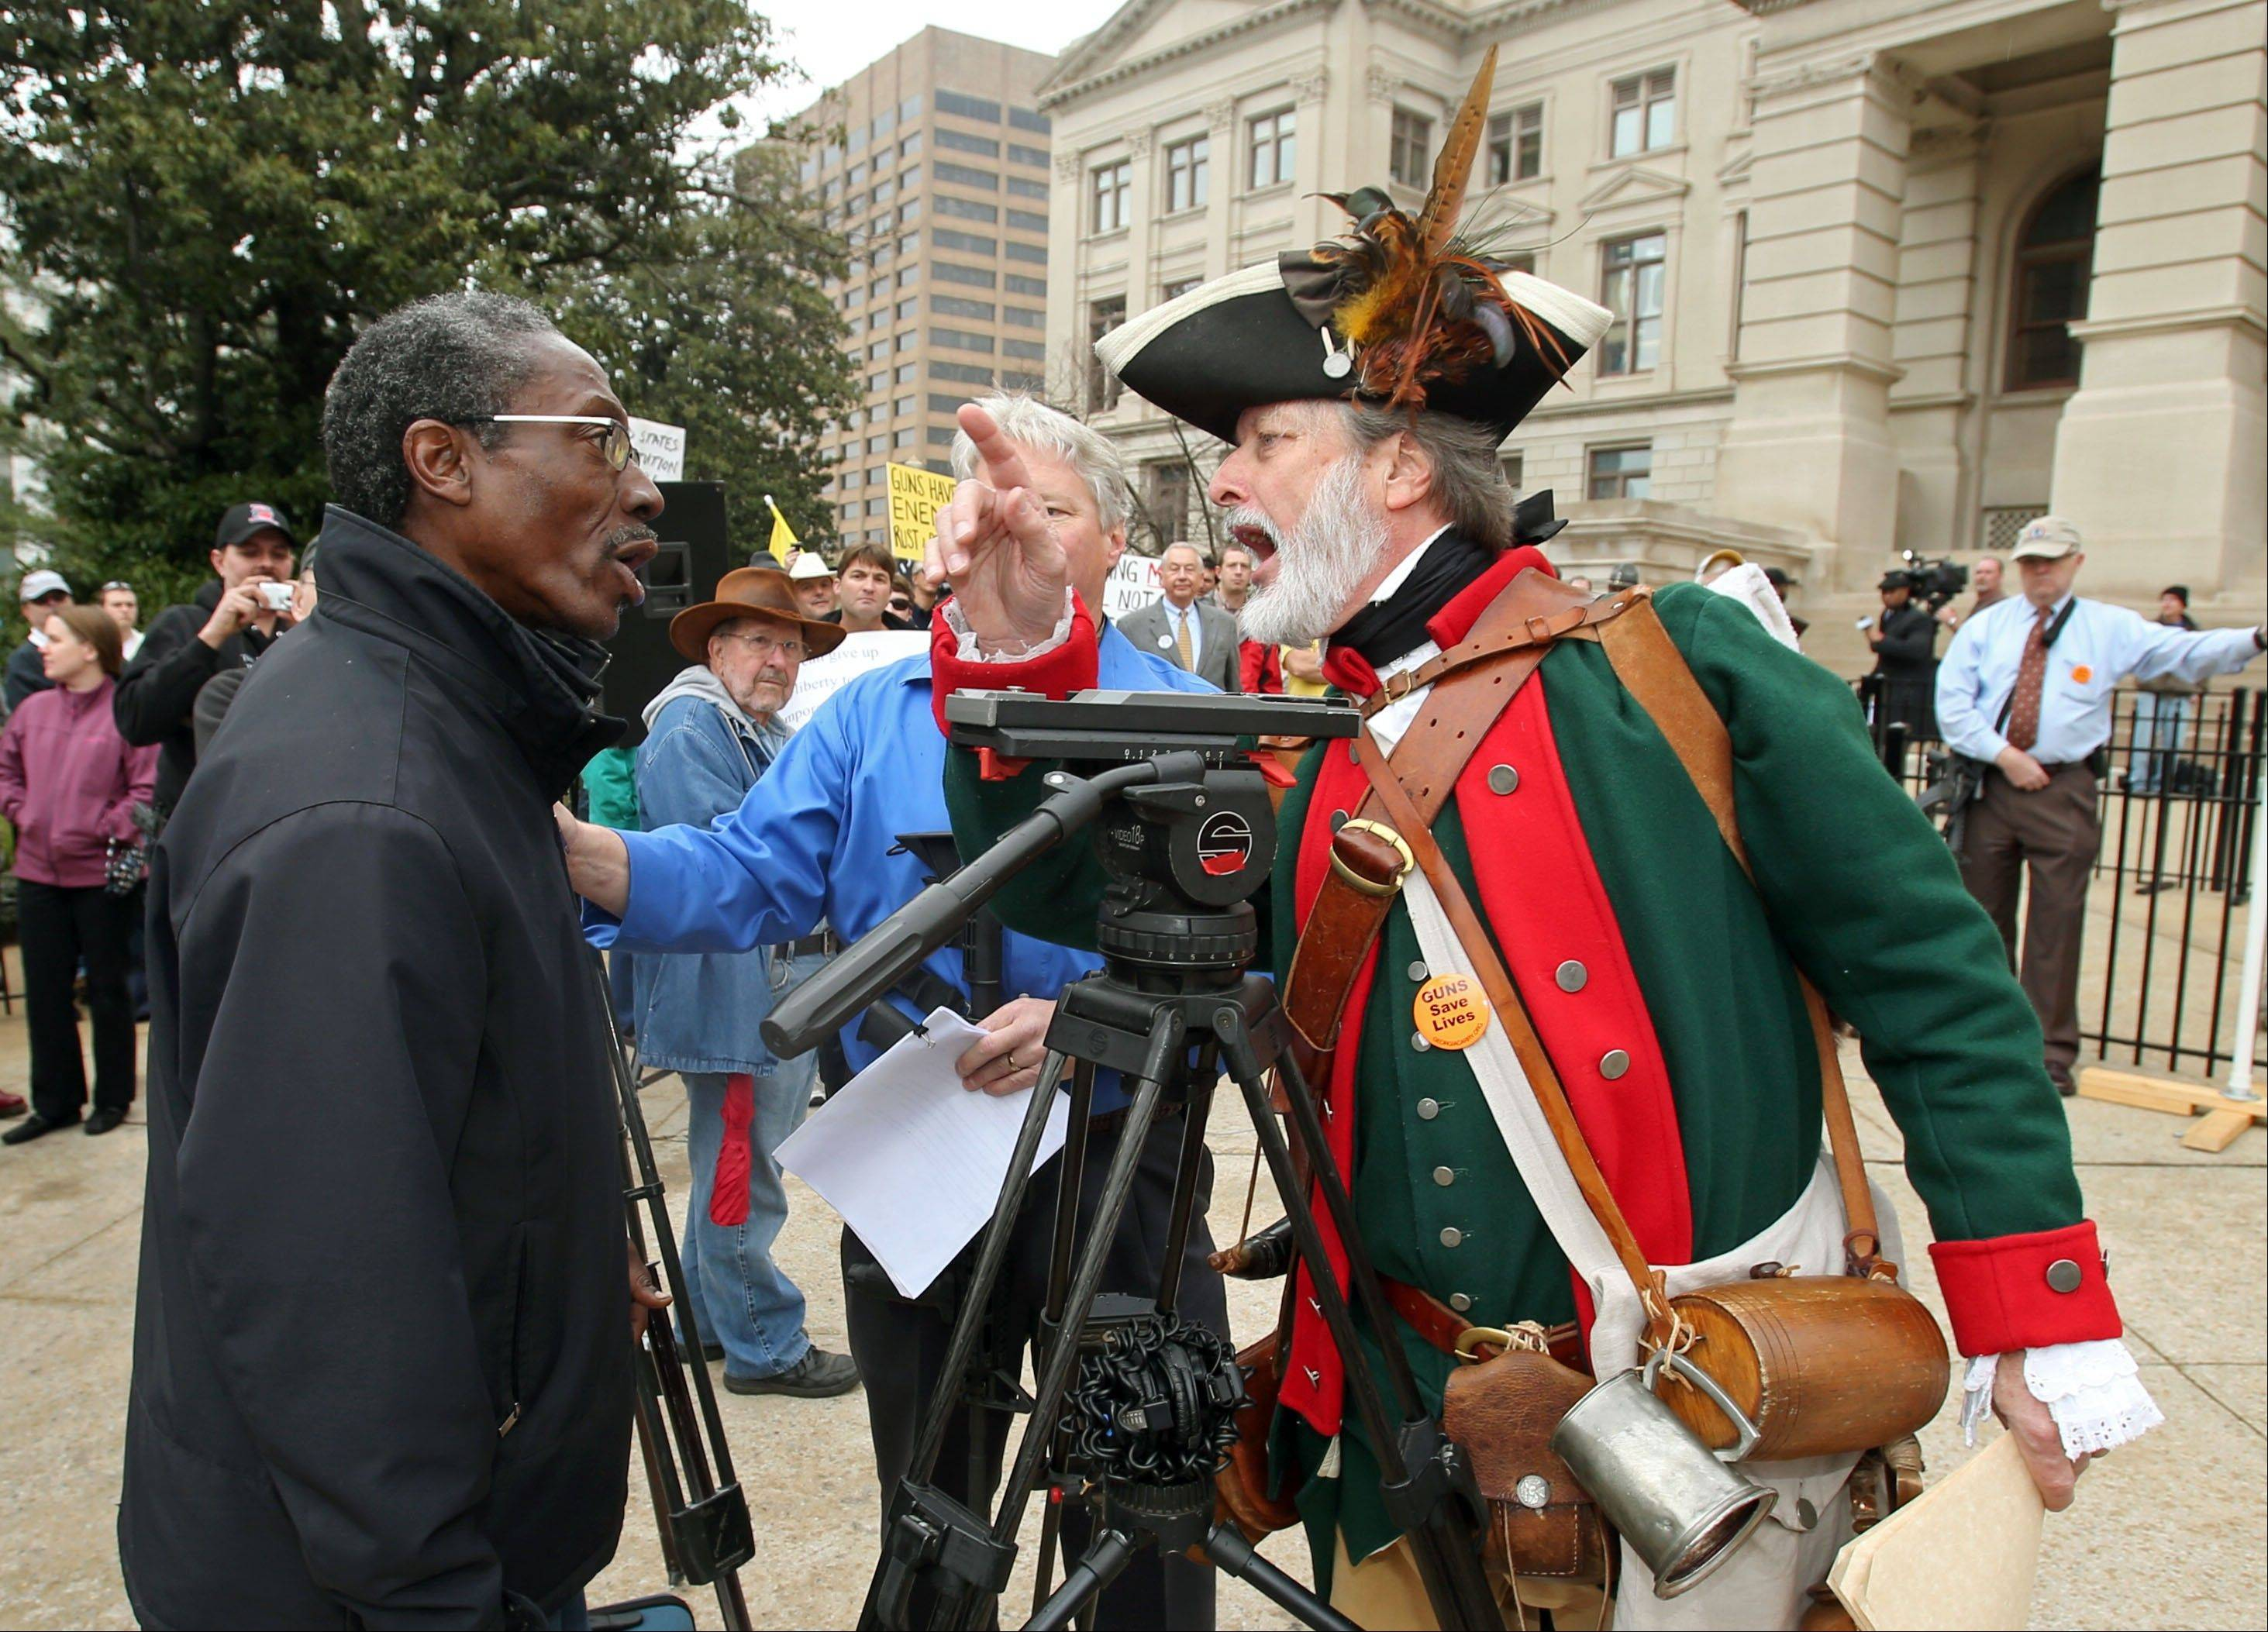 William Temple, of Brunswick, Ga., wearing revolutionary attire, right, argues with a man Friday during the Georgia State Capitol Pro-Gun Rally at the main entrance to the Georgia State Capitol.